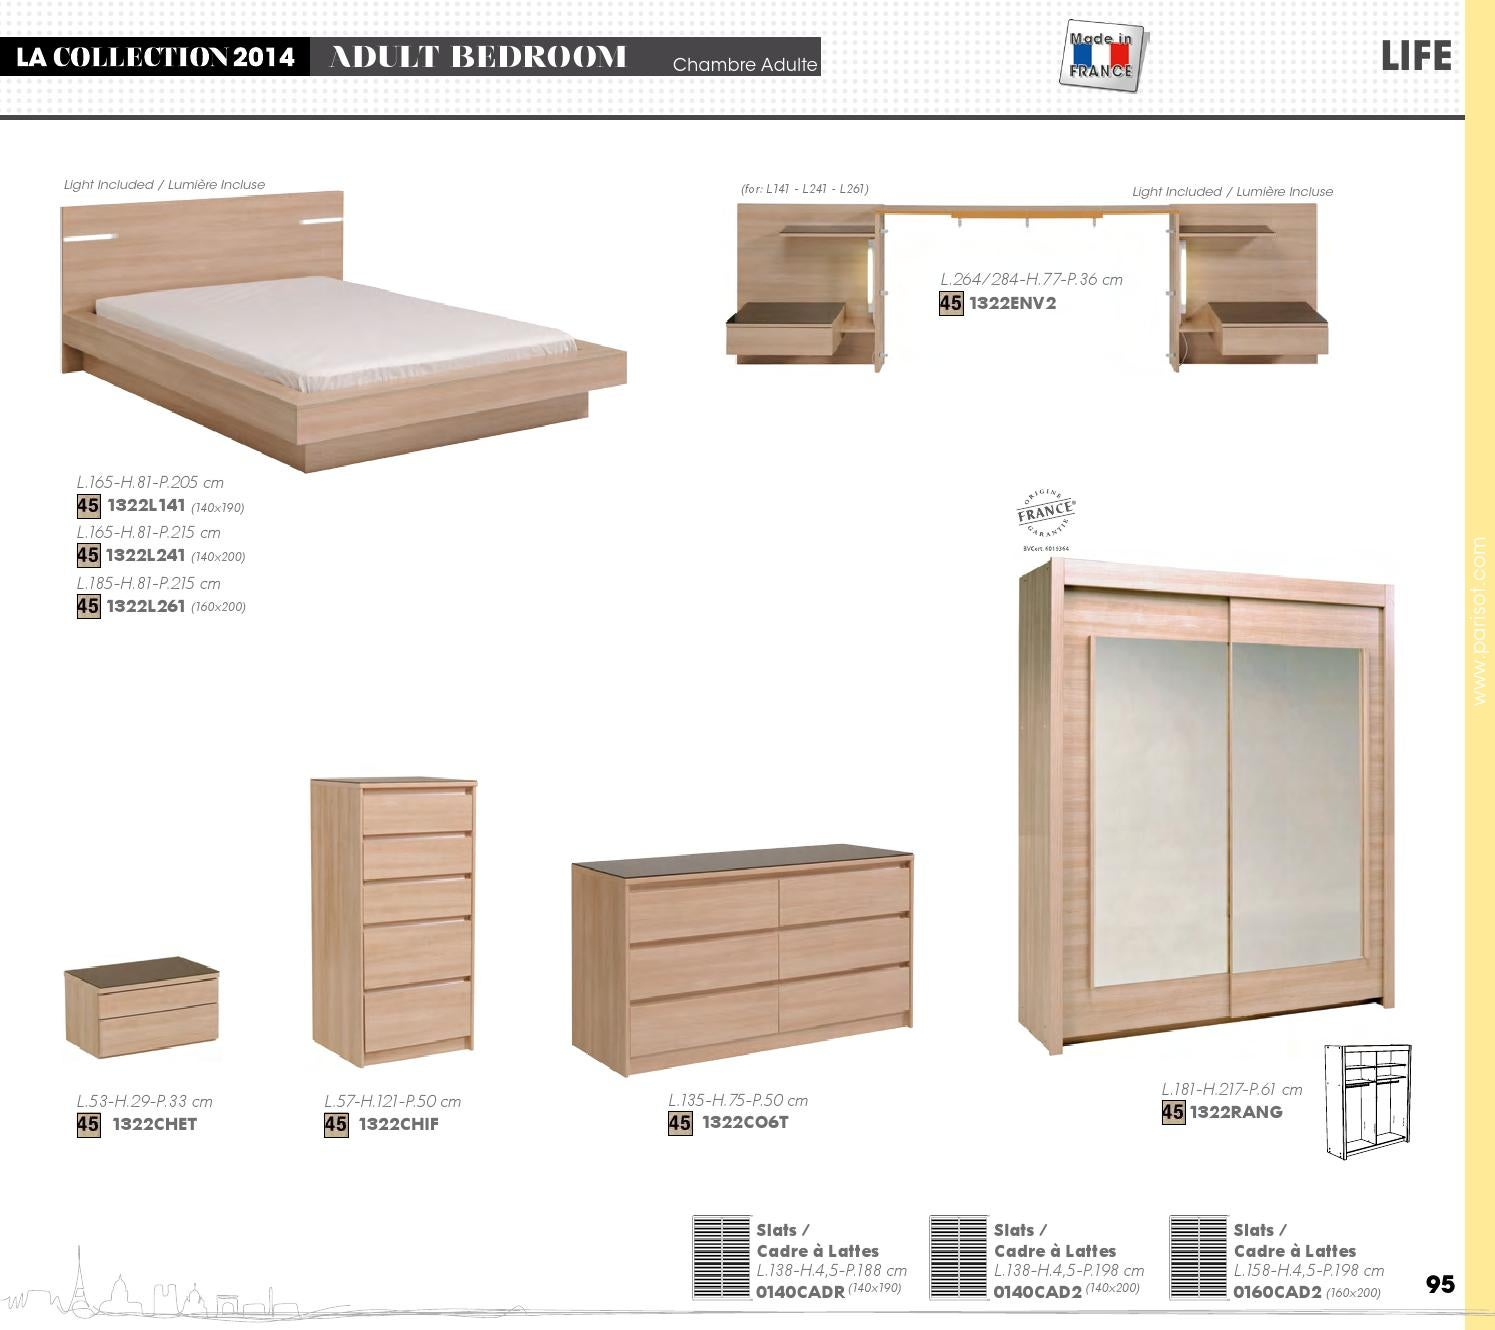 cadre a latte 140x200 sommier a lattes x sommier x cm avec with cadre a latte 140x200 perfect. Black Bedroom Furniture Sets. Home Design Ideas